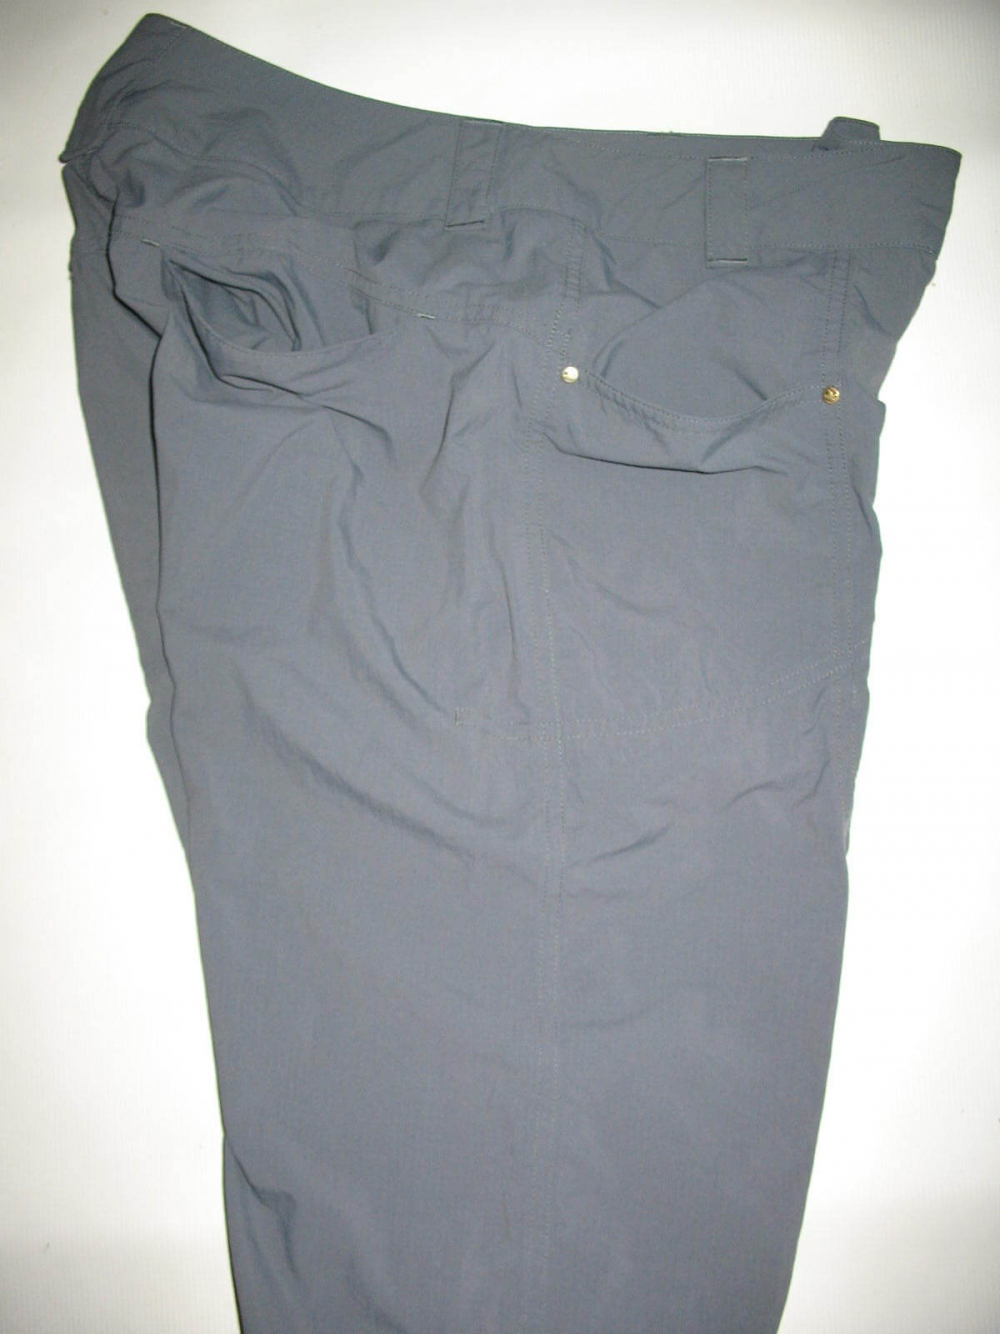 Бриджи SALEWA nola dry 3/4 pants lady (размер XL/L) - 5